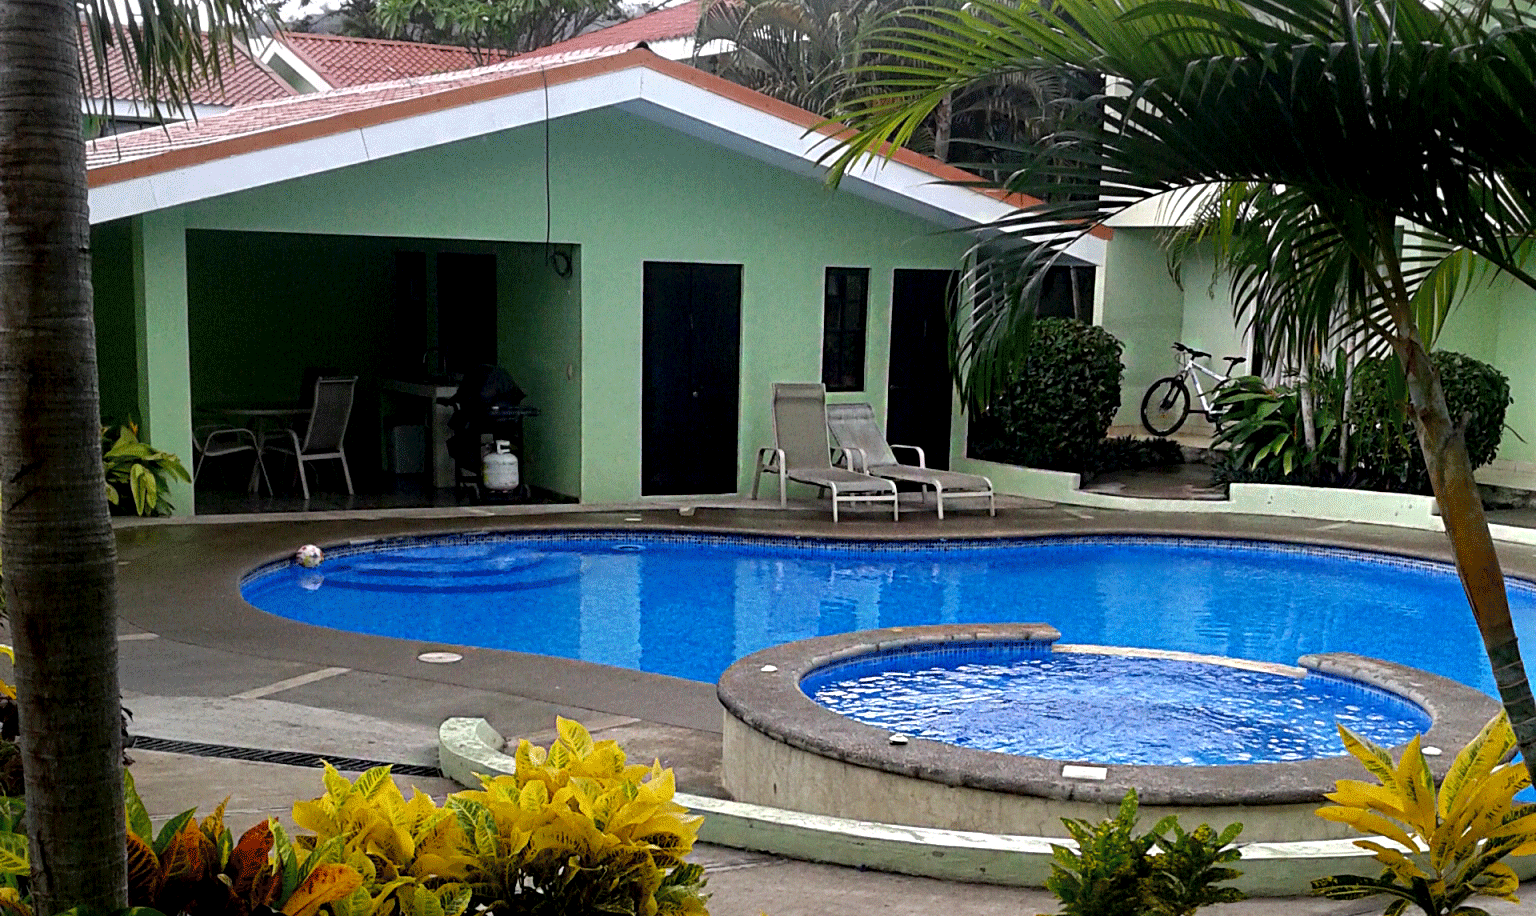 Coco beach condo hot sale walk to beach 2 bed 2 bath for Costa rica vacation house rentals